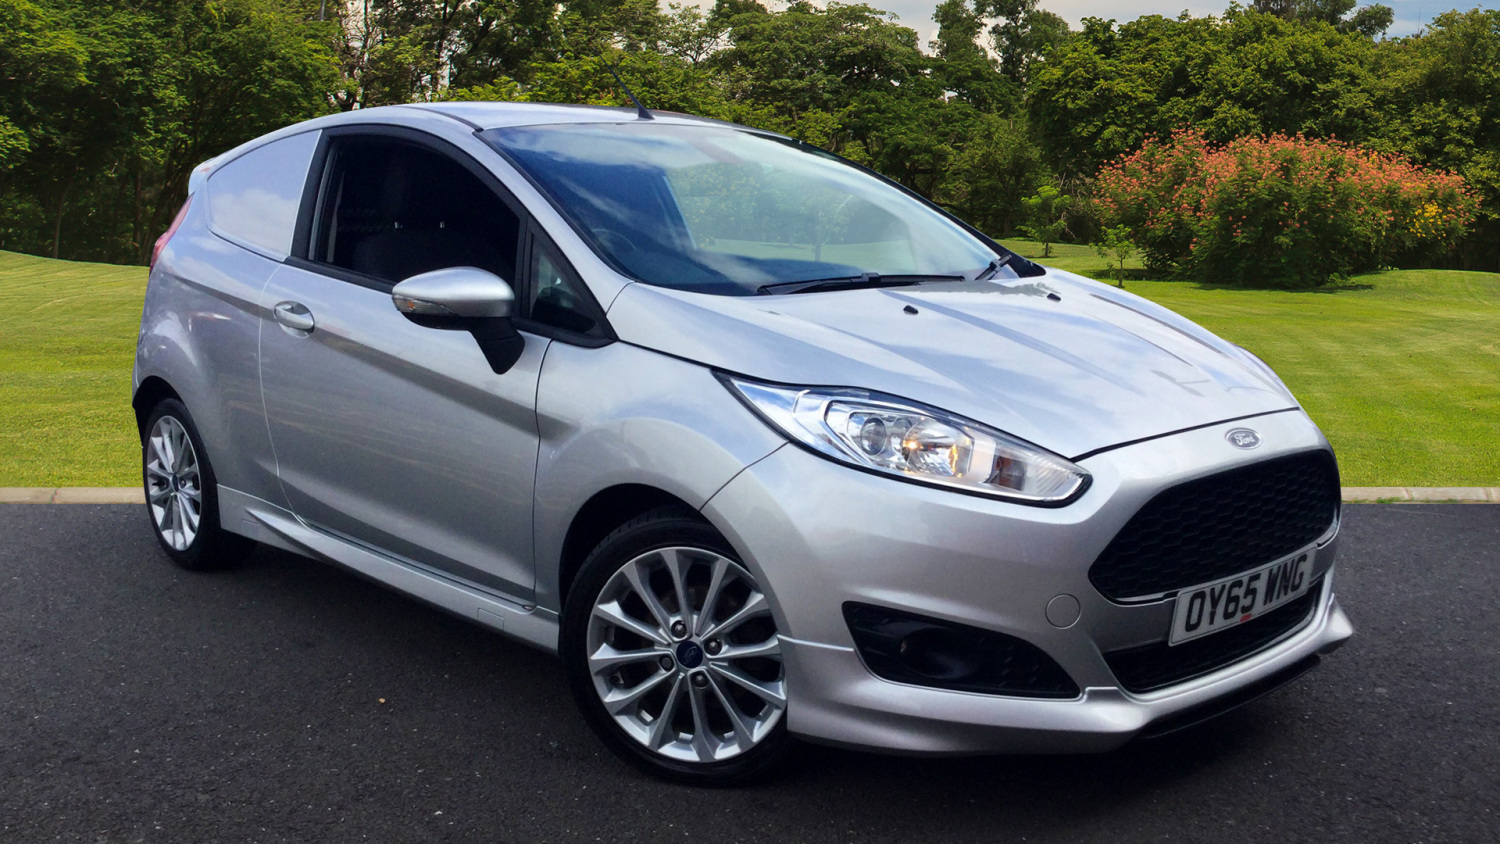 Ford Fiesta 1.6 Tdci Sport Van For Sale >> Used Ford Fiesta Diesel 1 6 Tdci Sport Van For Sale Car Credit Assured